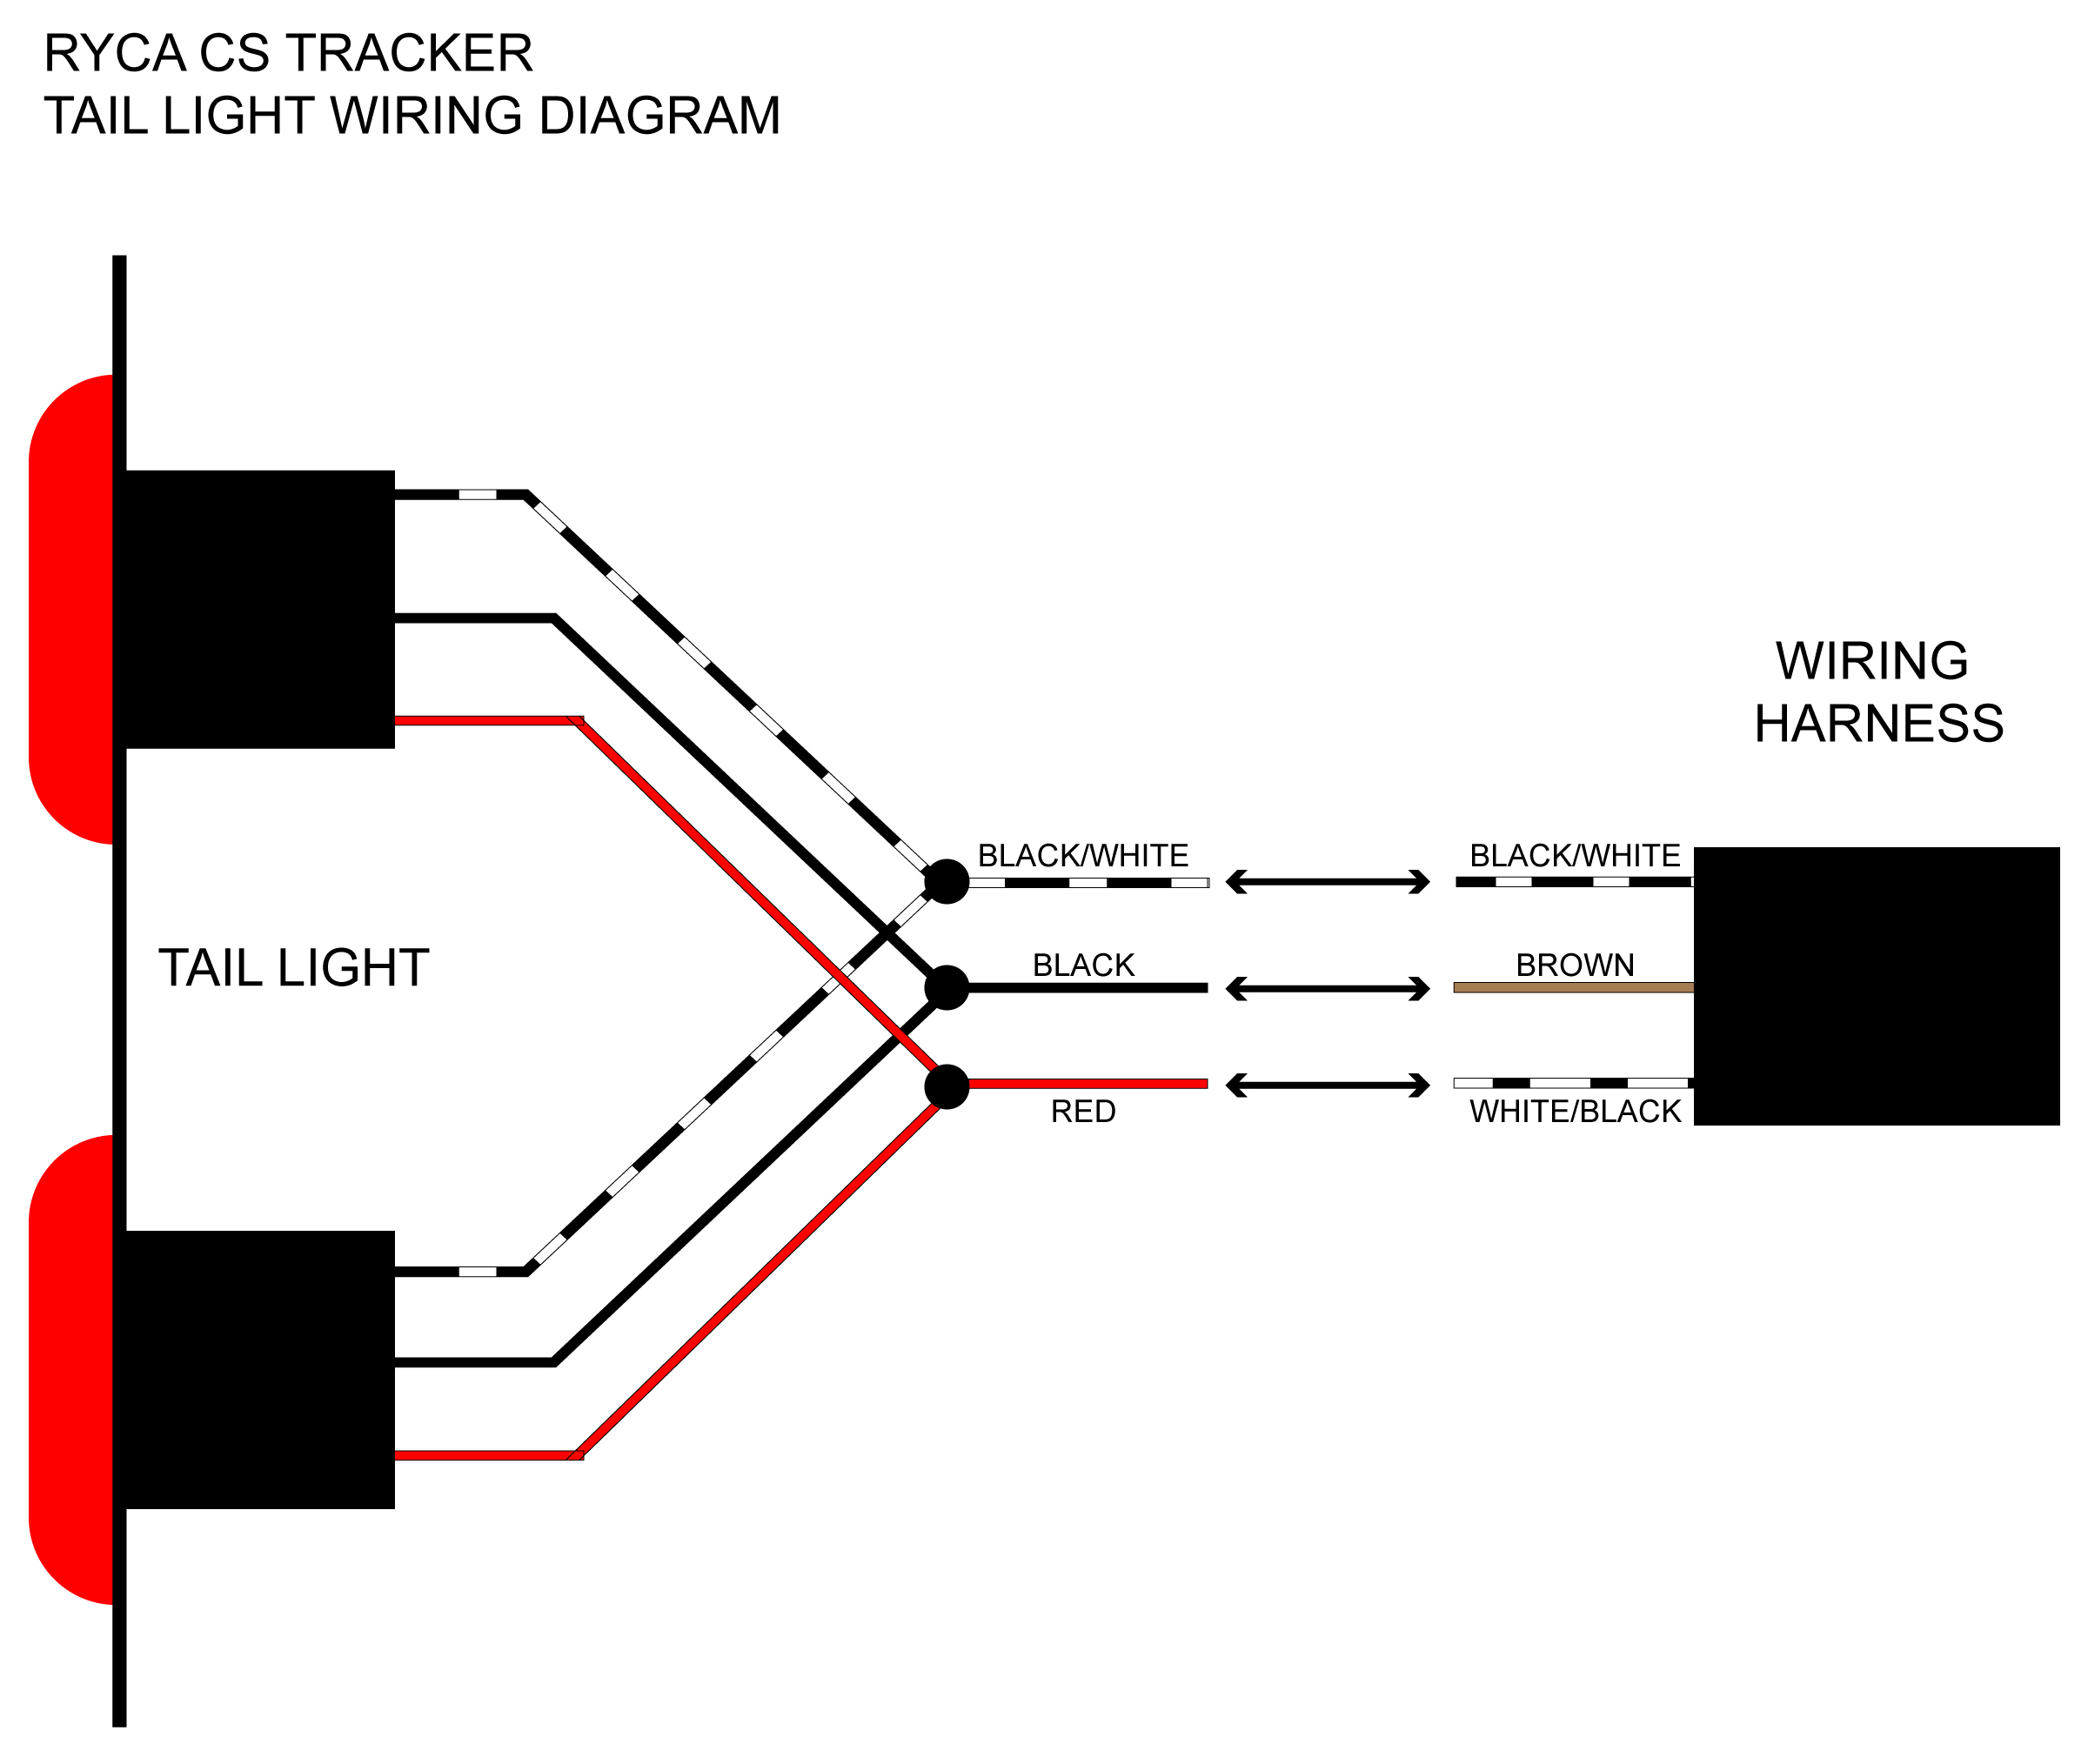 3 Wire Trailer Diagram - Schema Wiring Diagram - Simple Trailer Wiring Diagram